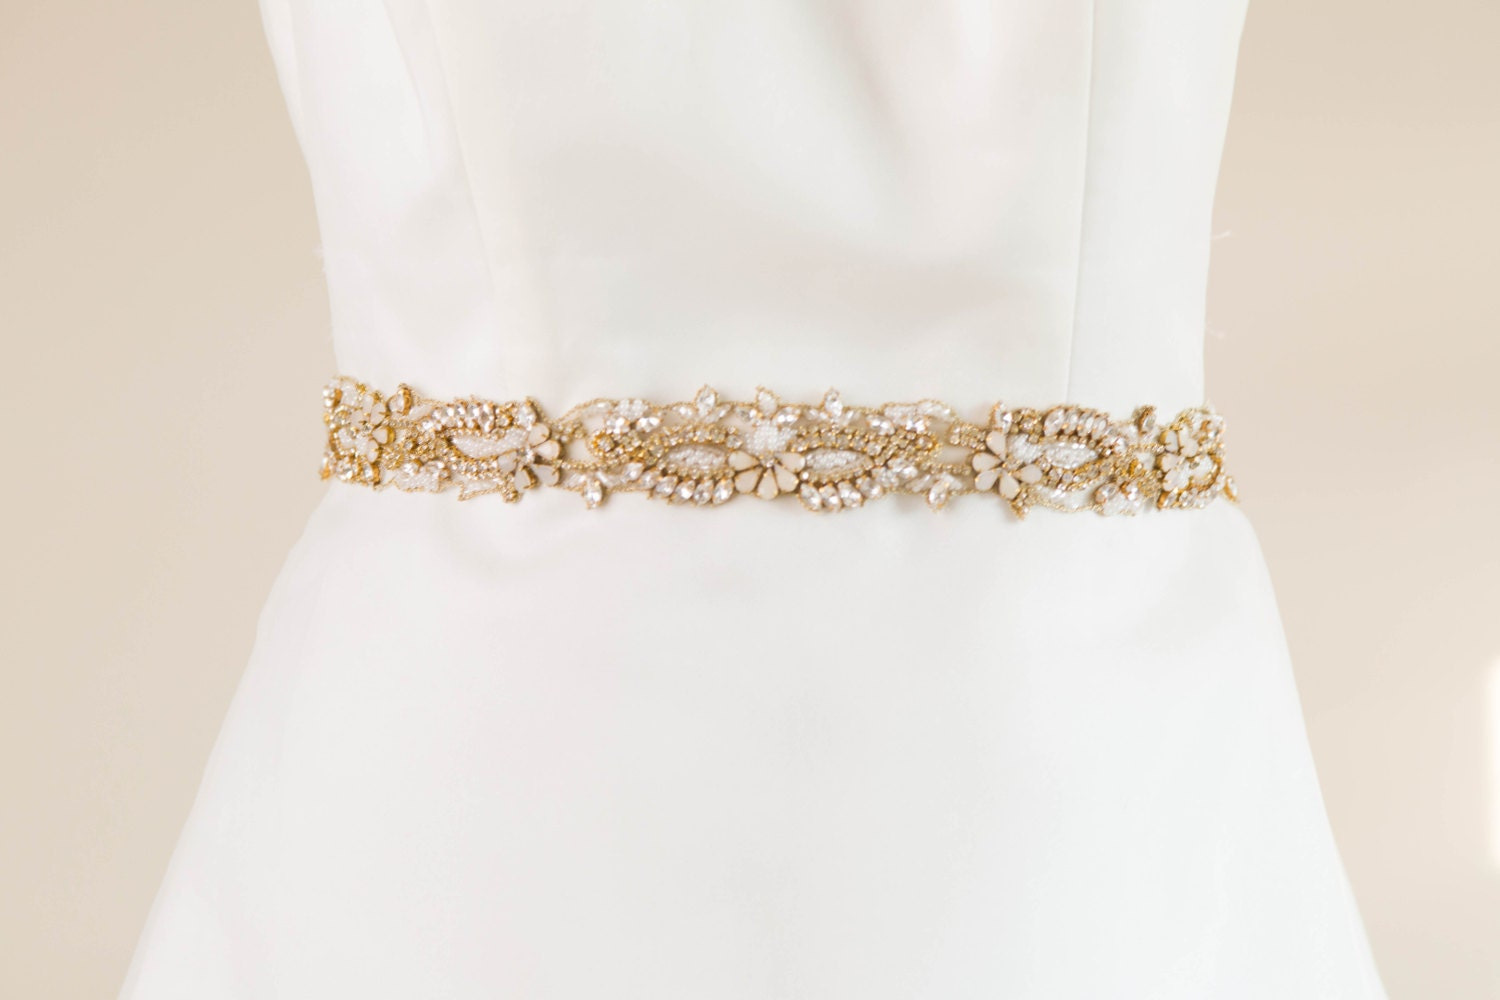 Wedding Sash Gold And Opal Bridal Sash Rhinestone Encrusted